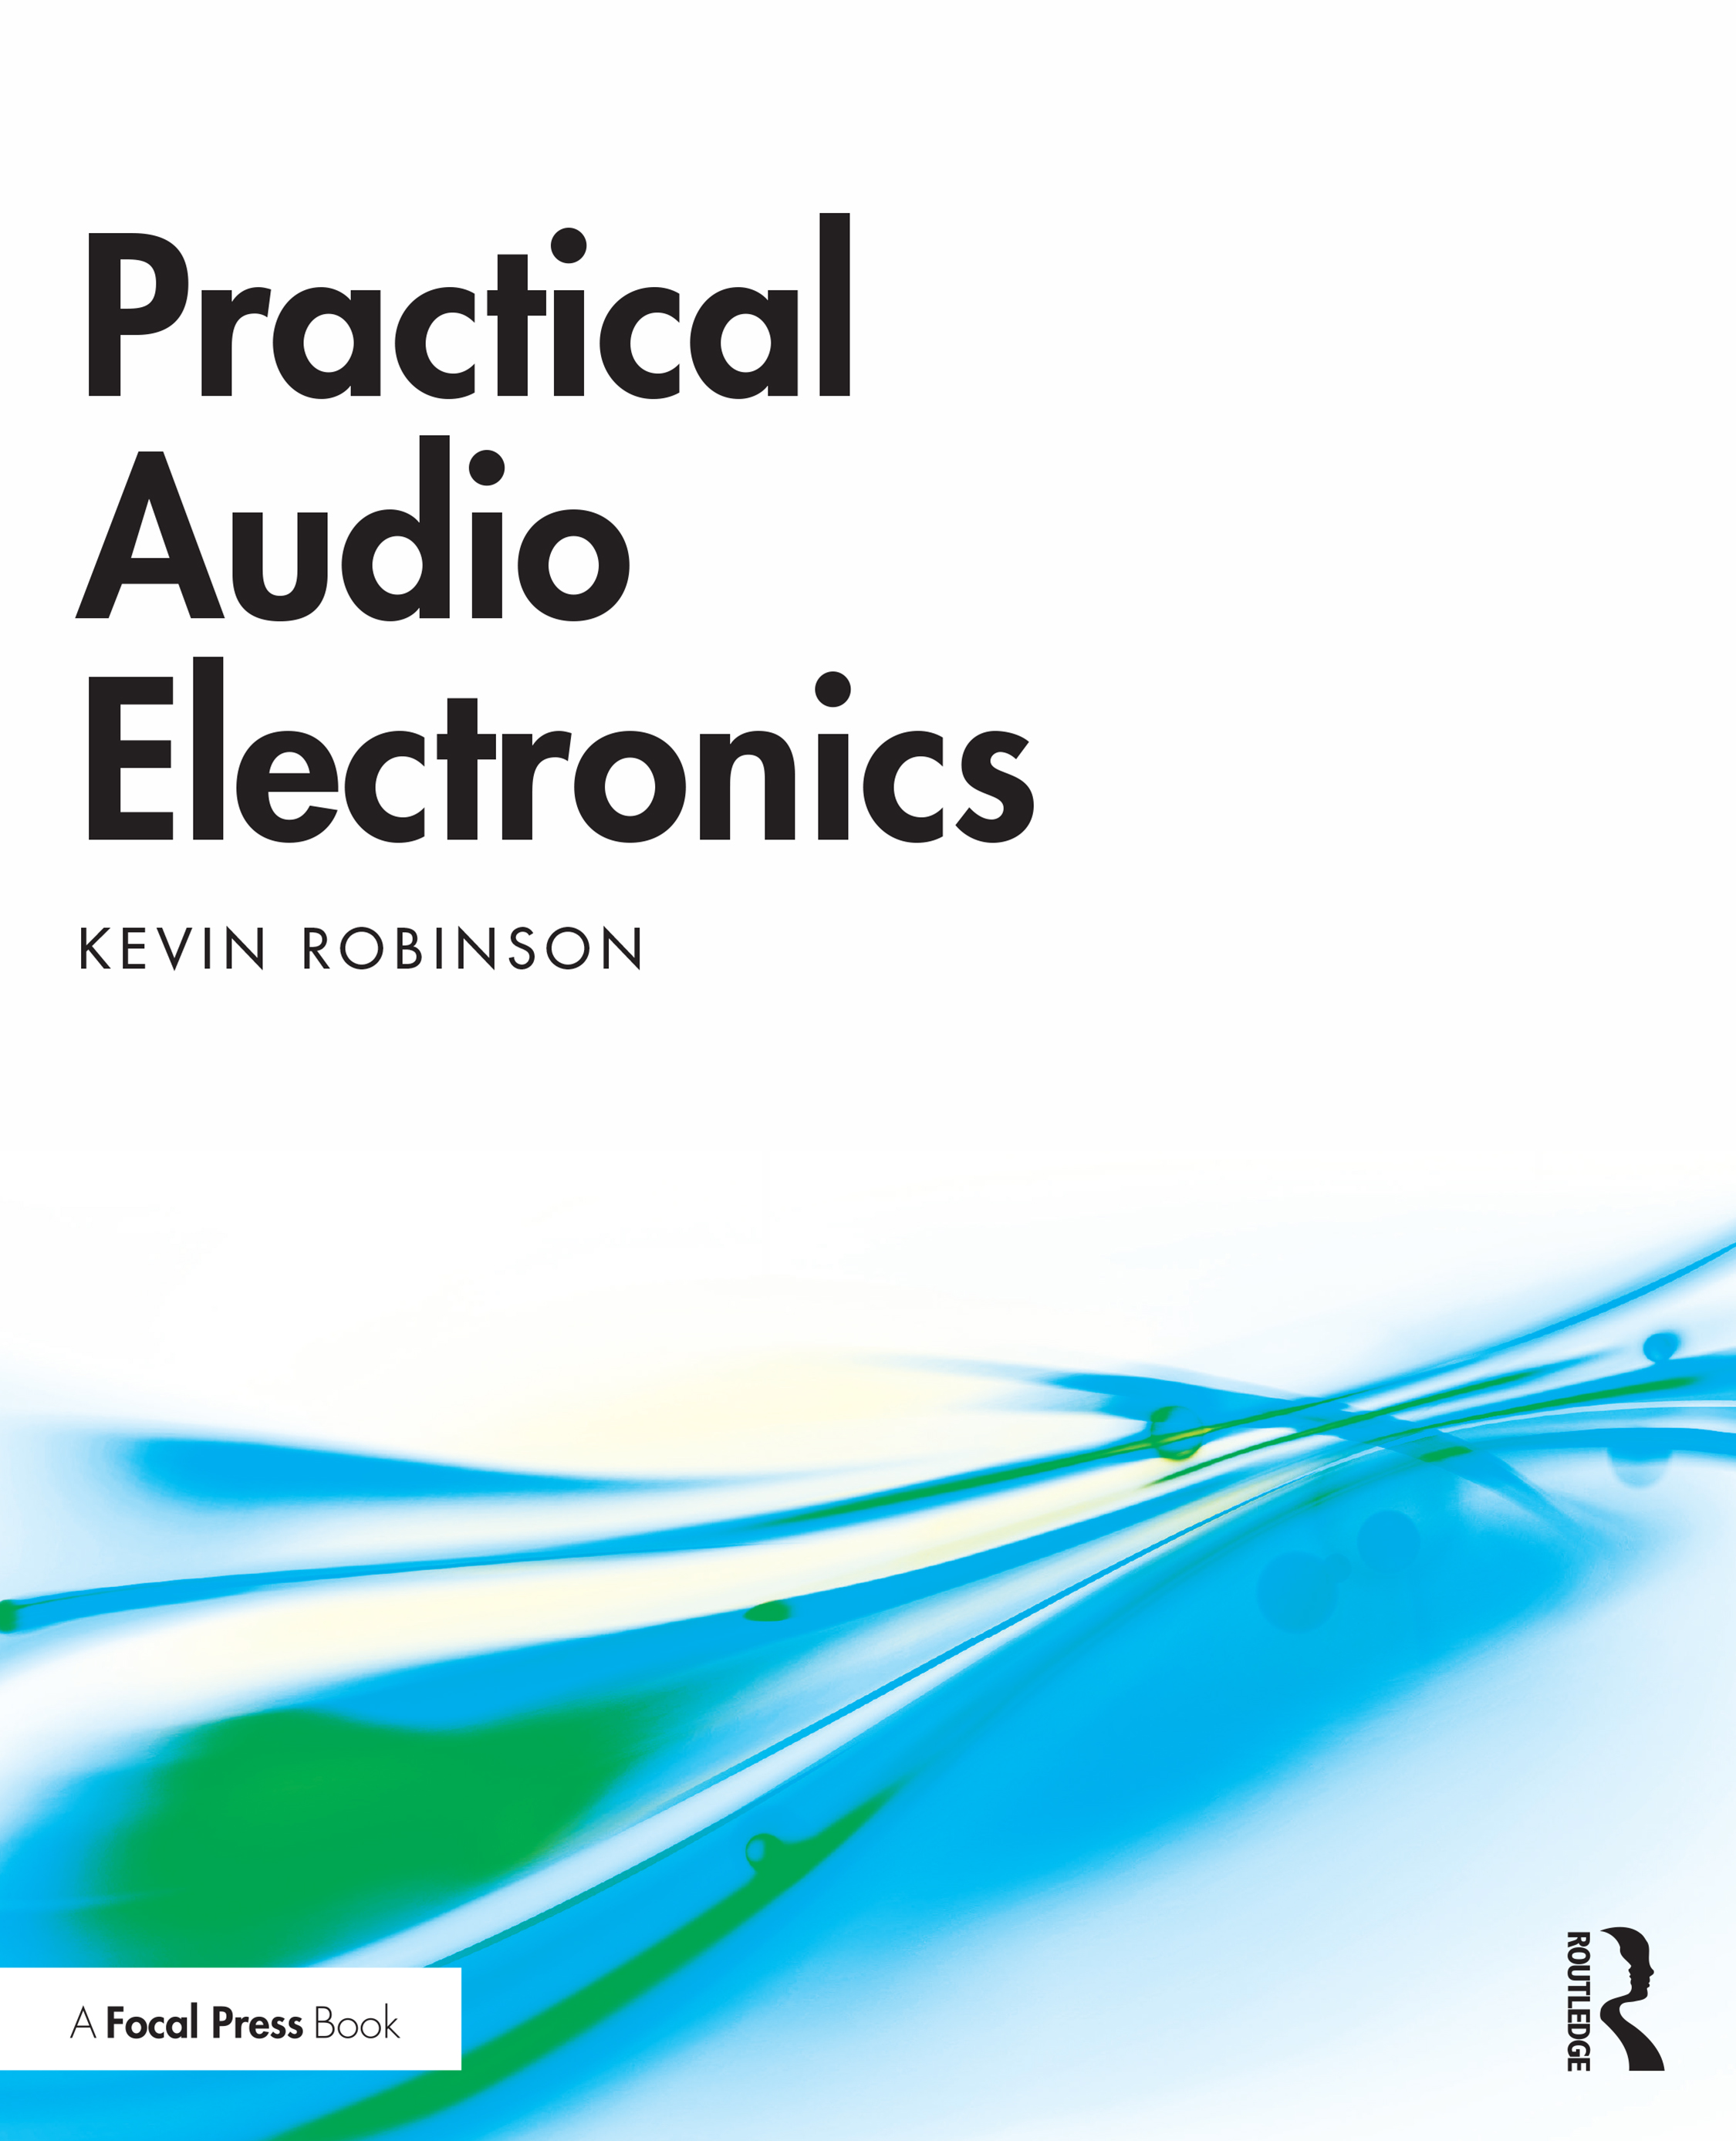 Practical Audio Electronics book cover